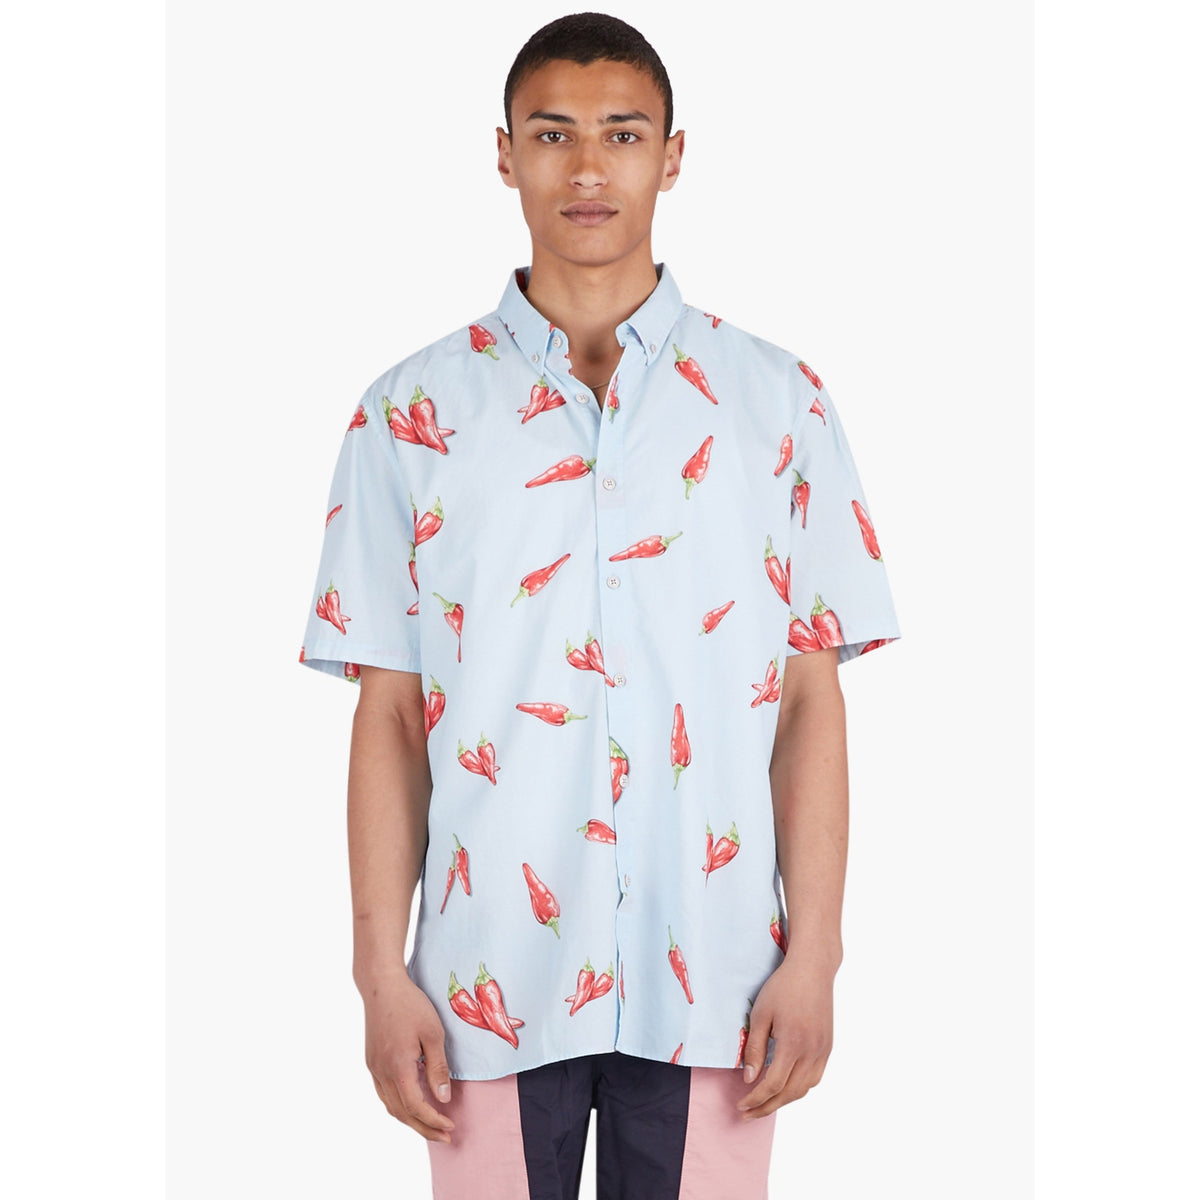 Tourist Short Sleeve Shirt Chilli Print